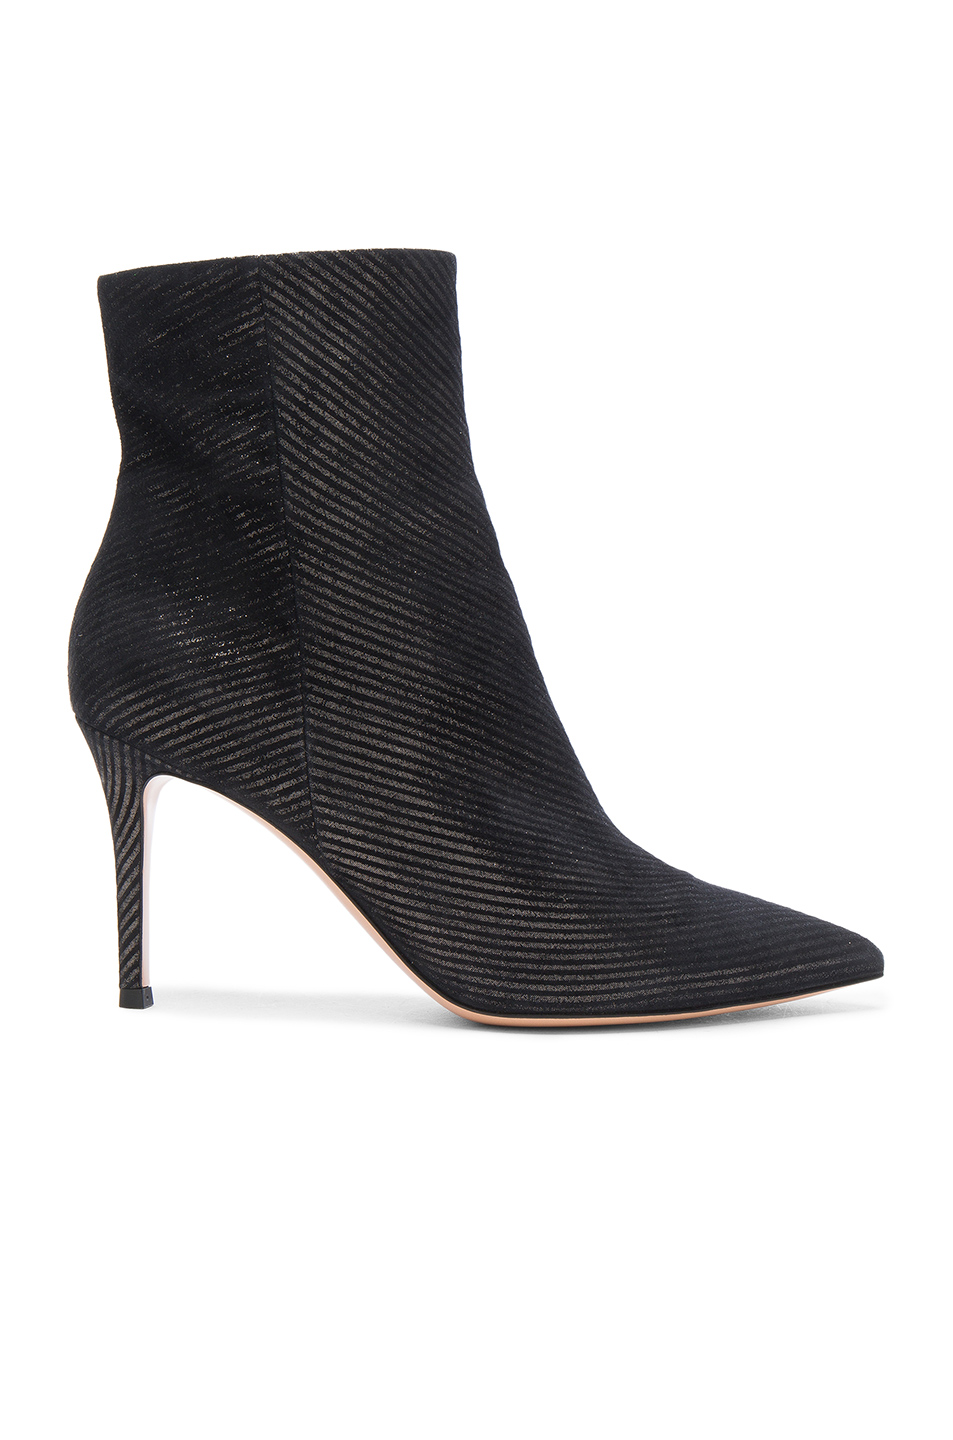 Gianvito Rossi Metallic Pinstripe Booties In Metallics,Black,Stripes